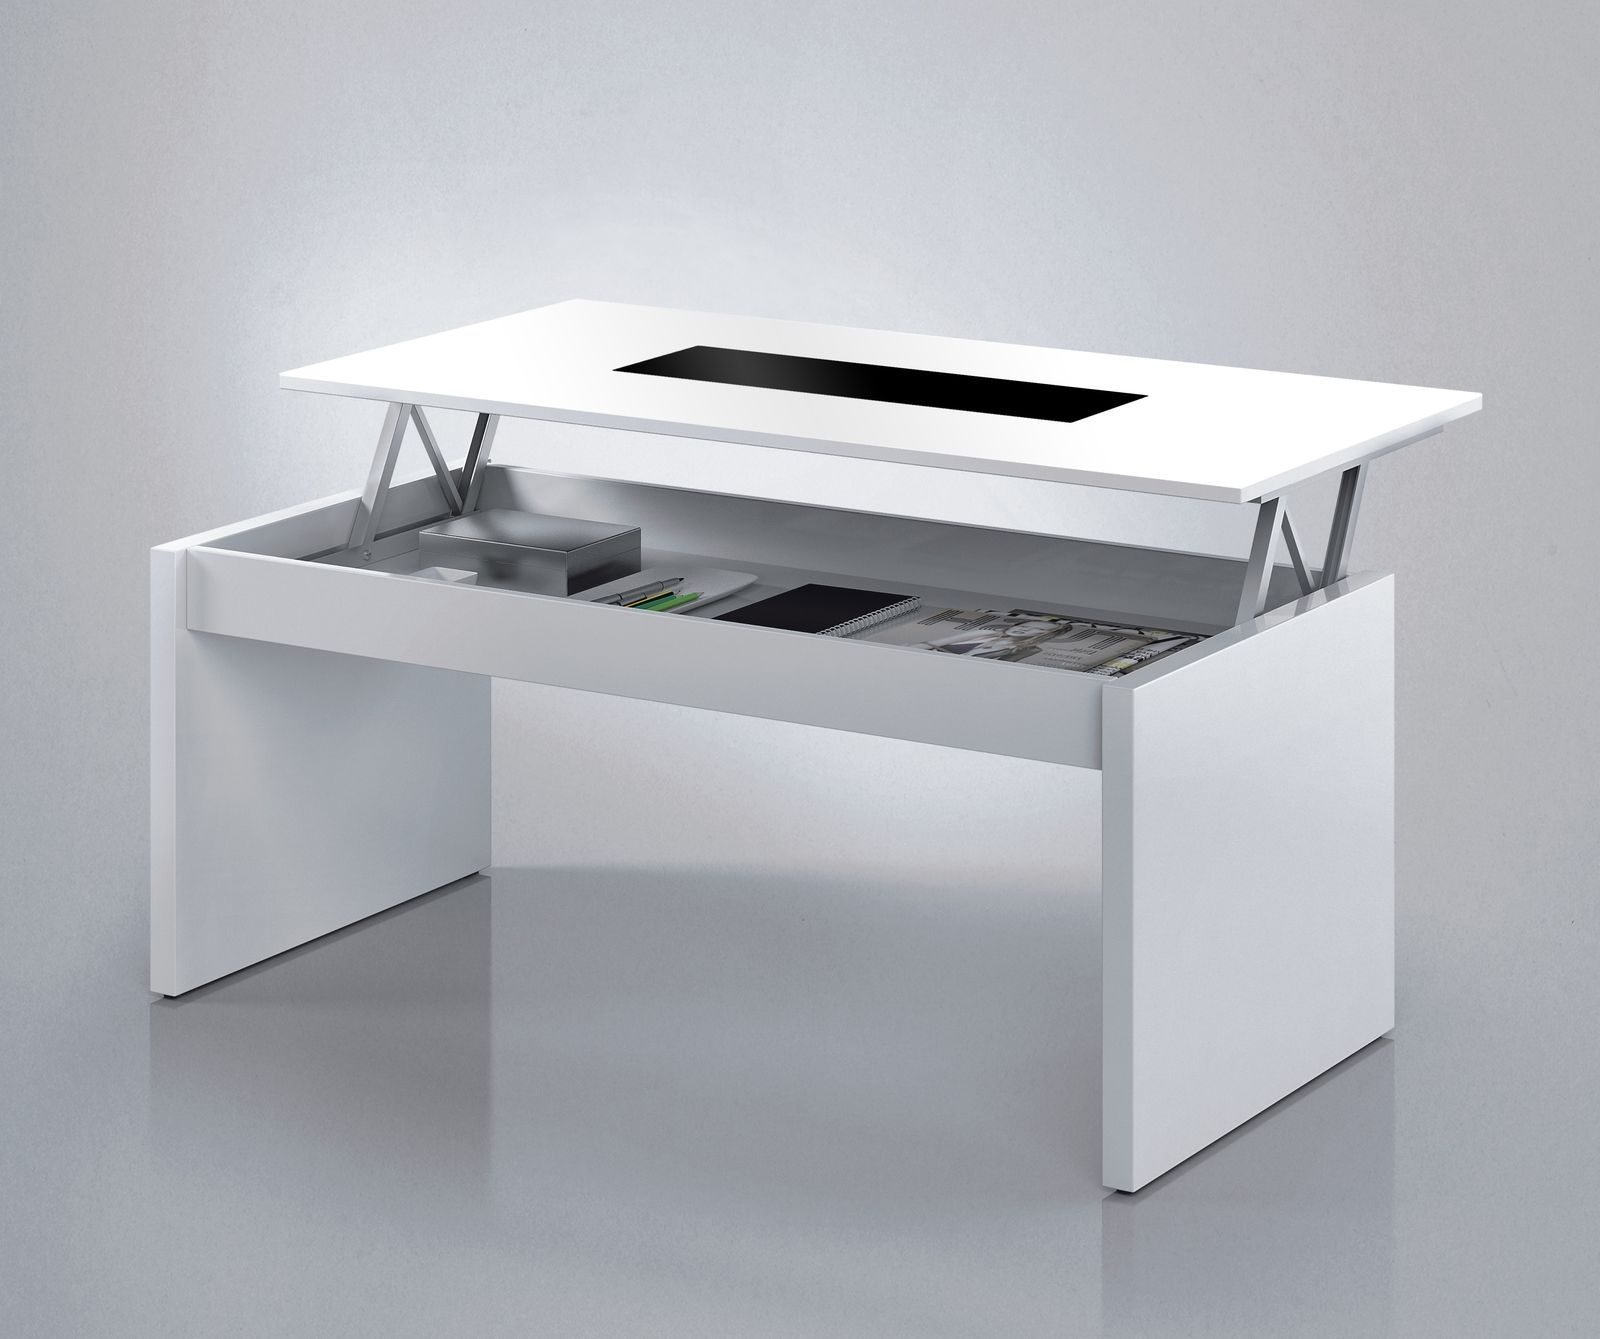 Ebay Mesas De Centro Details About Lucia Lift Up Coffee Table Storage Modern White